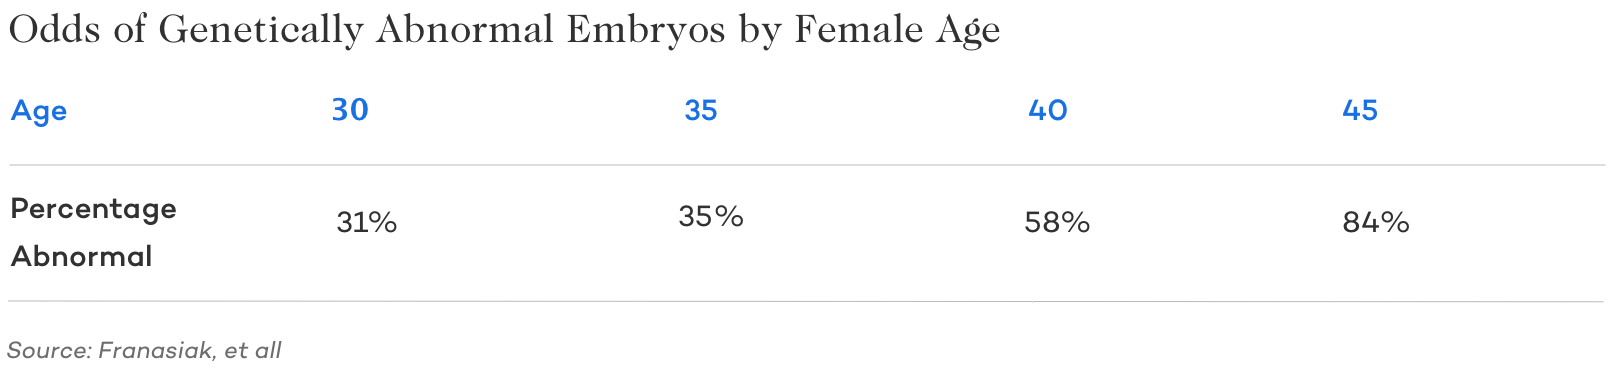 Odds of Genetically Abnormal Embryos by Age Chart